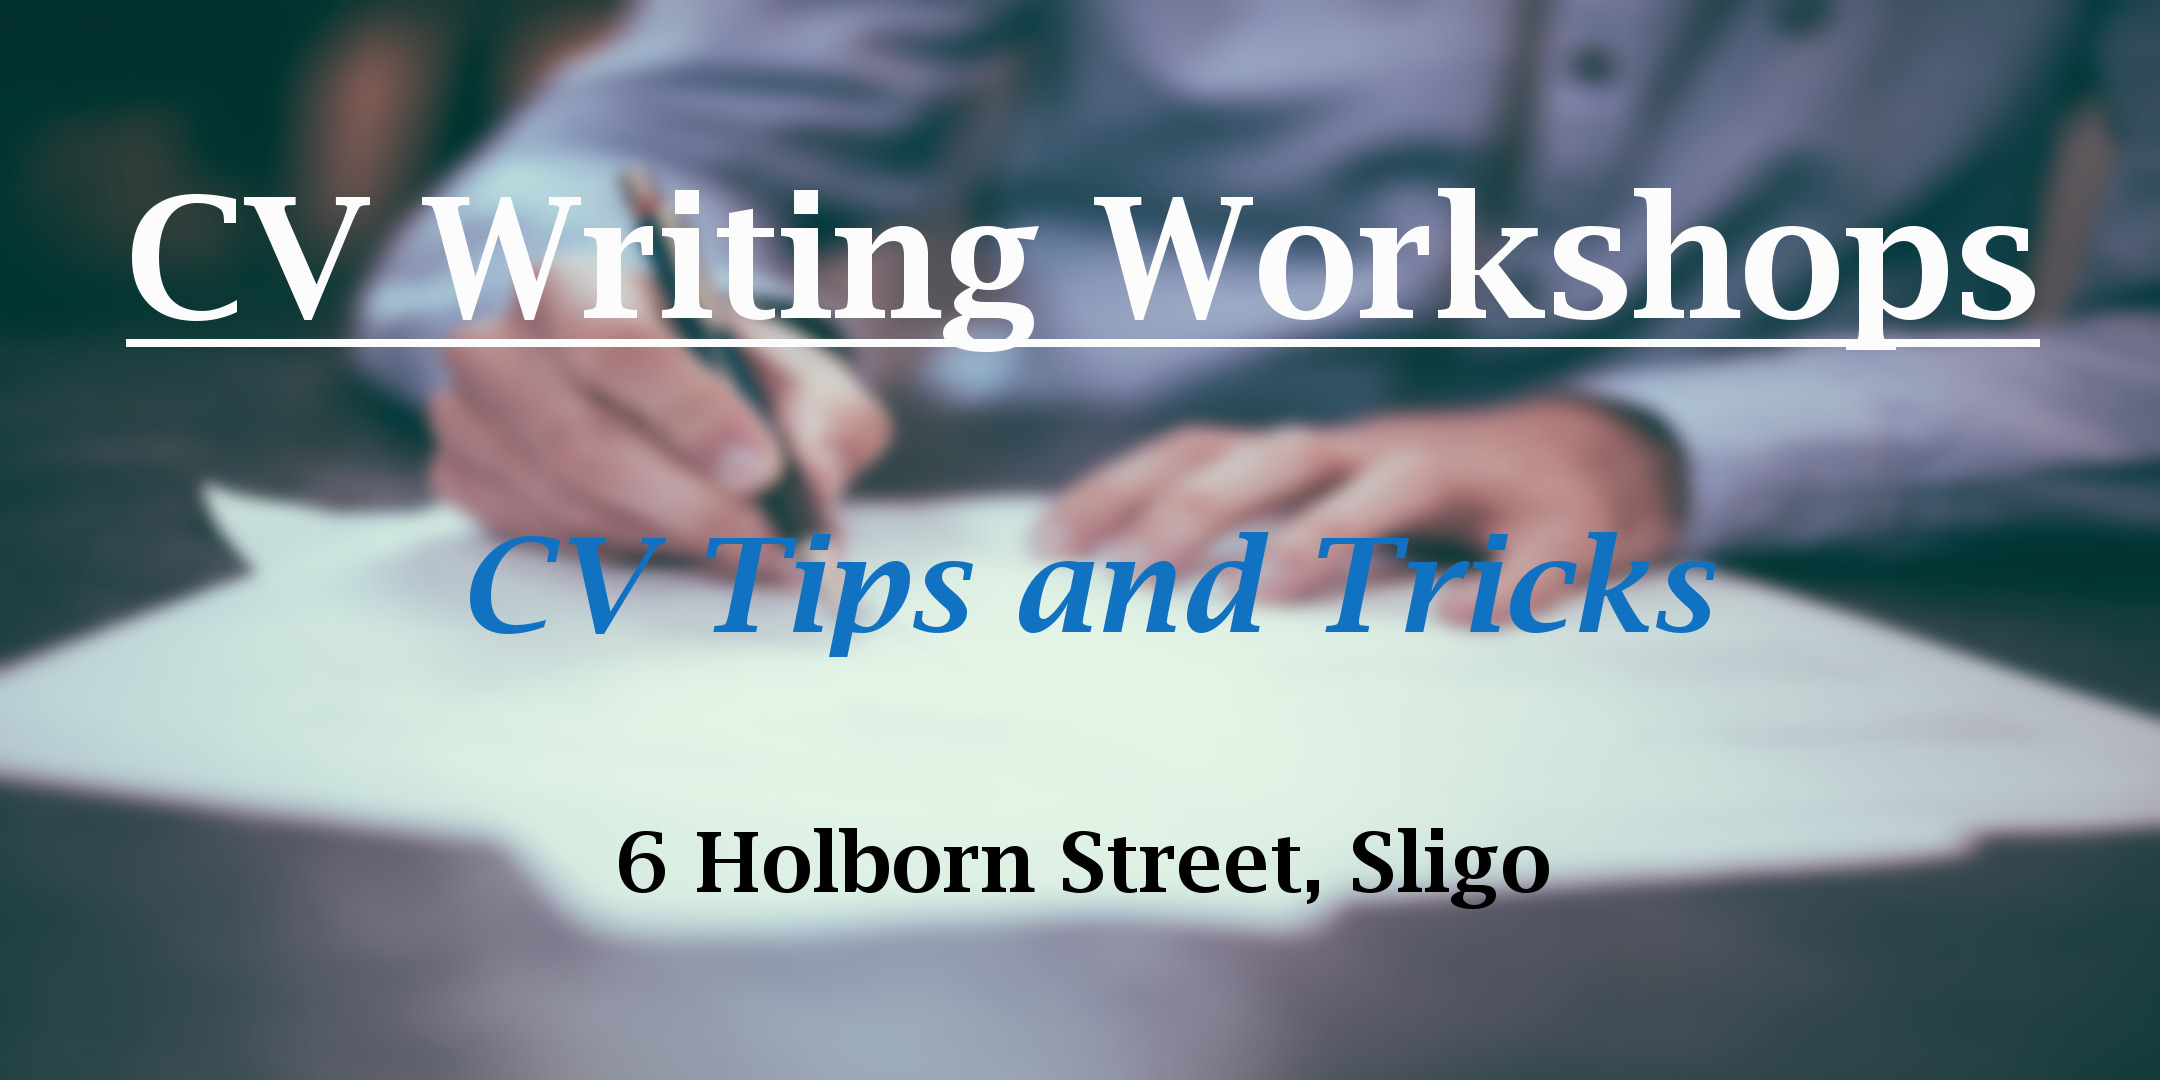 CV Writing Workshop – Learn to Optimise your CV